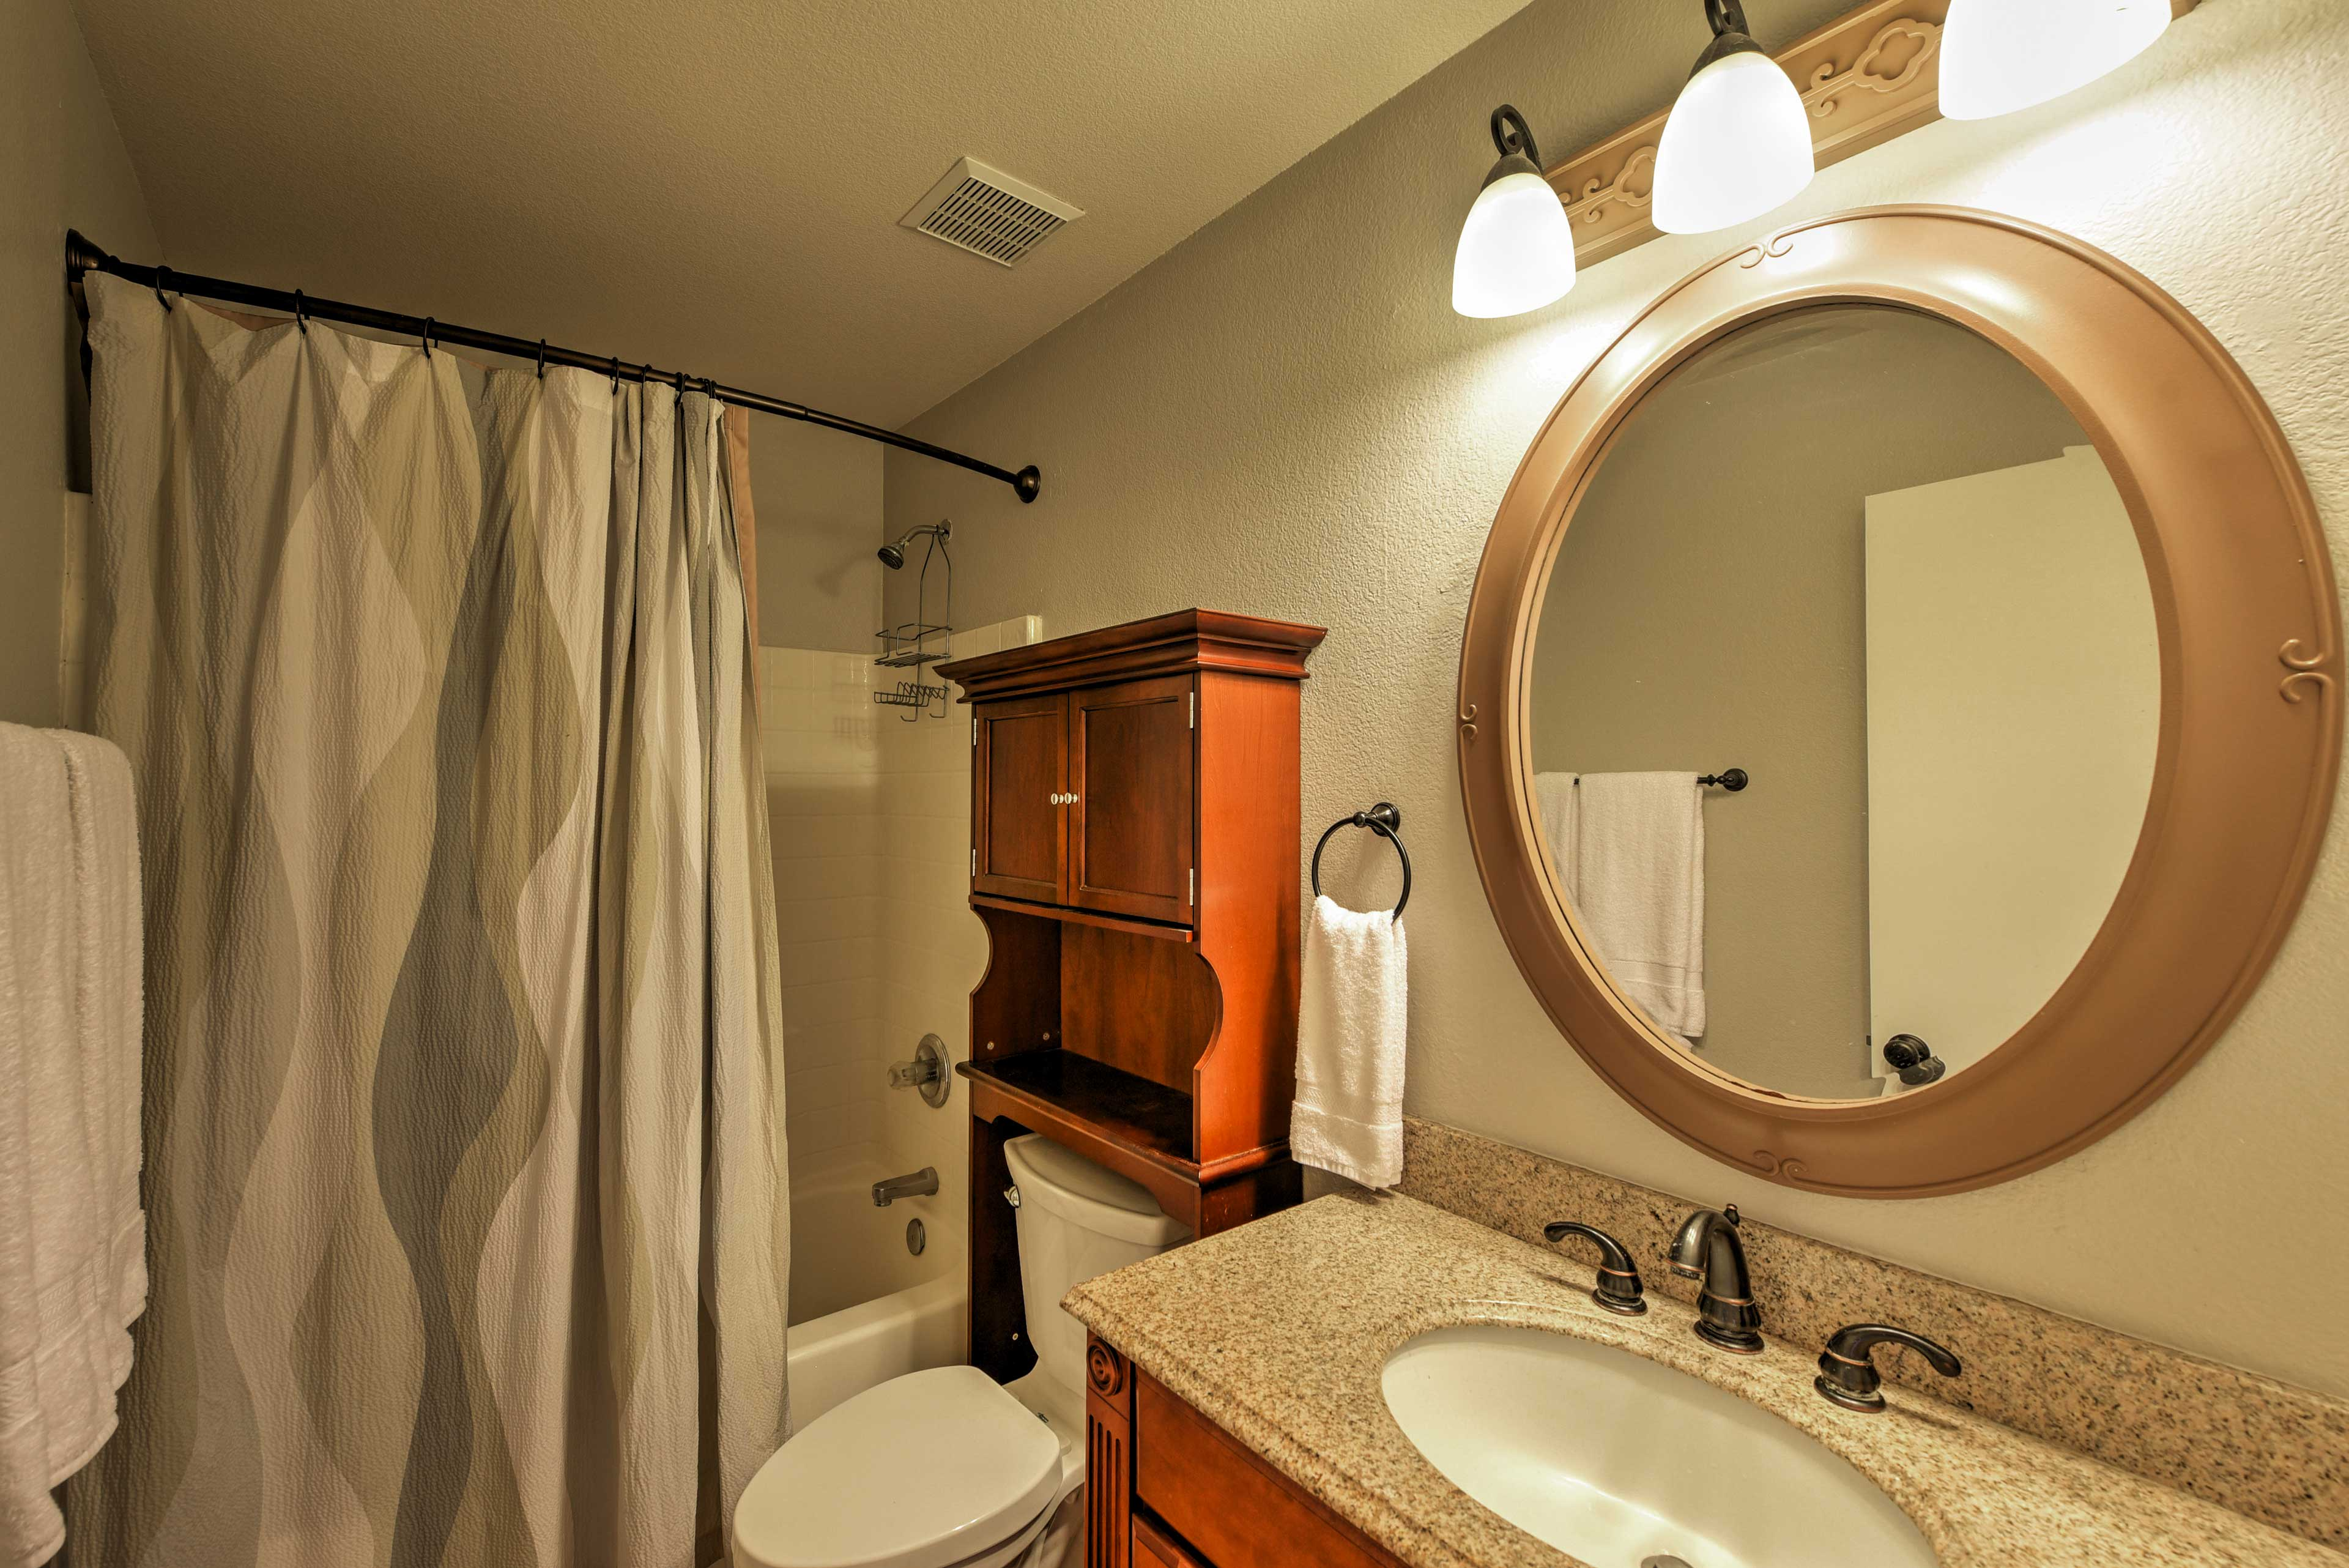 This second bathroom features a shower/tub combo and plenty of space to clean up